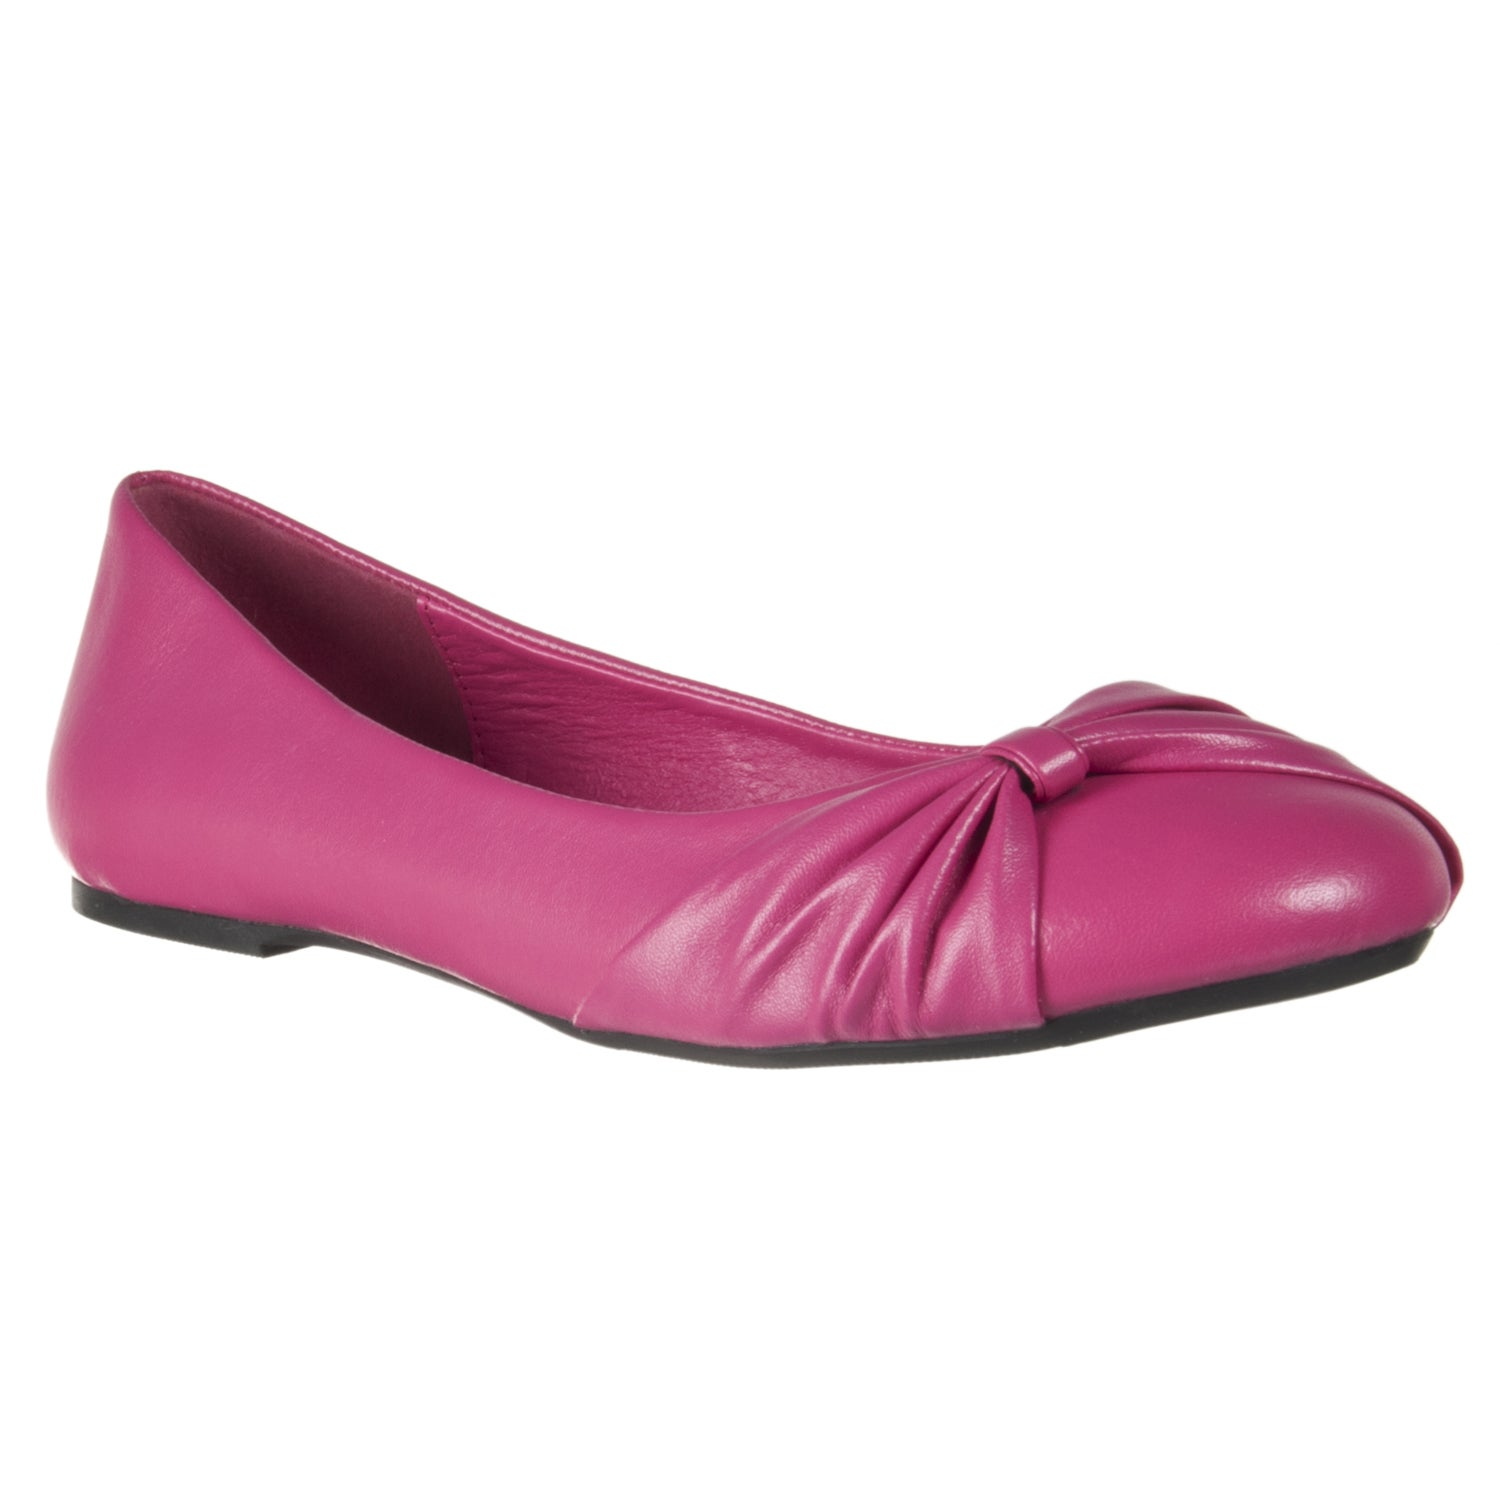 Riverberry Women's Fuchsia Bow-detail Ballet Flats